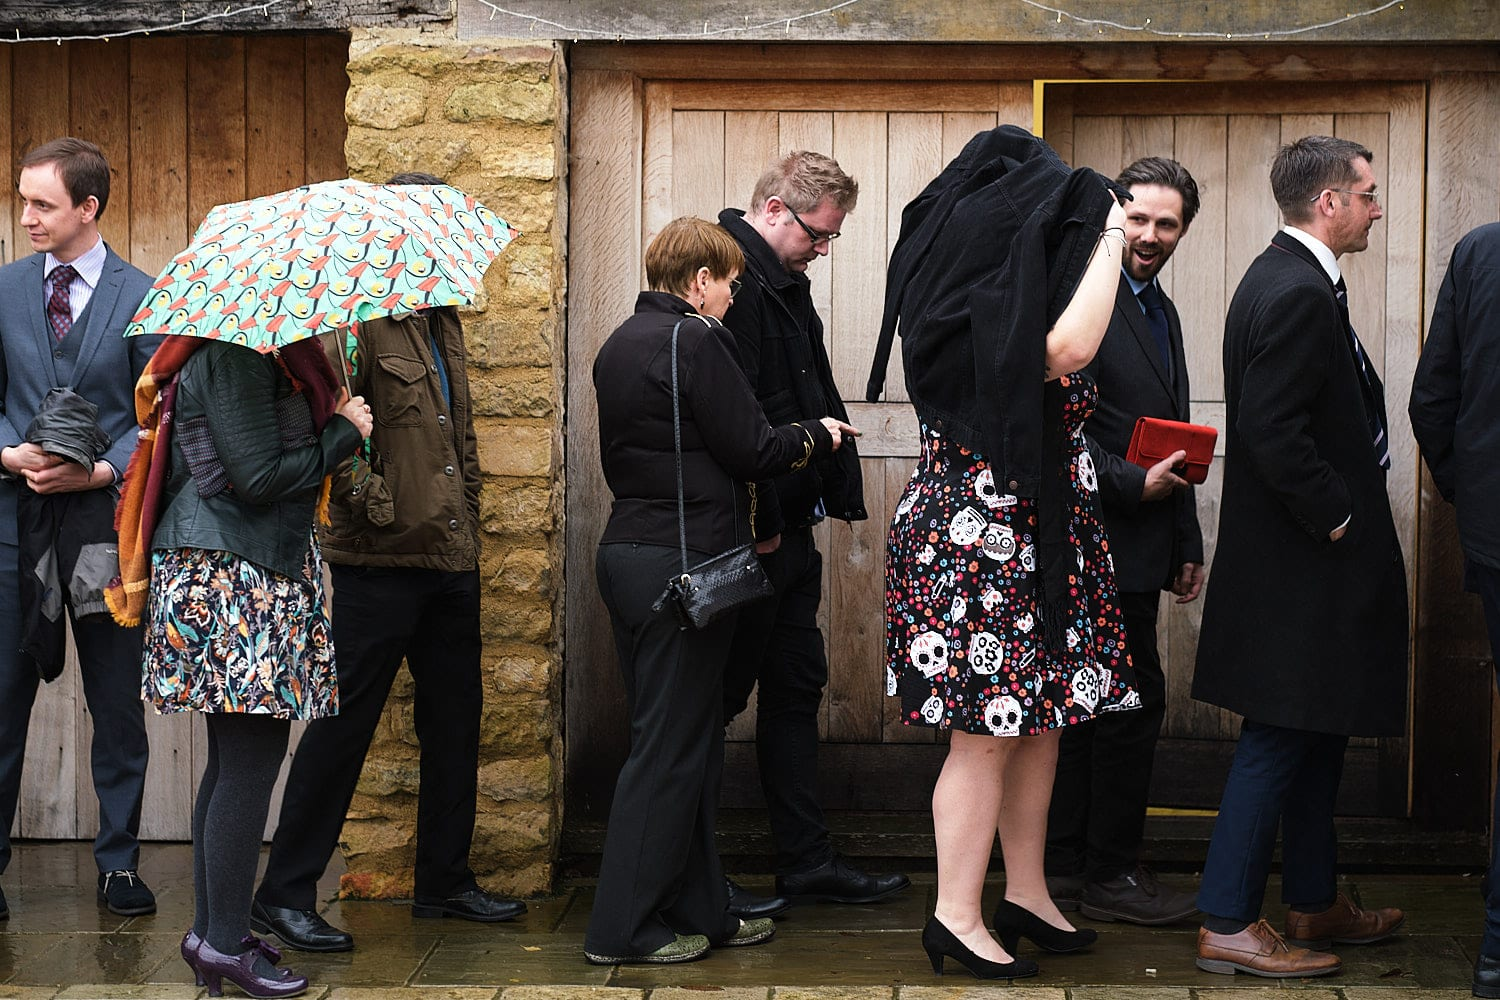 wedding guests cover themselves with coats and umbrellas on a wet wedding day